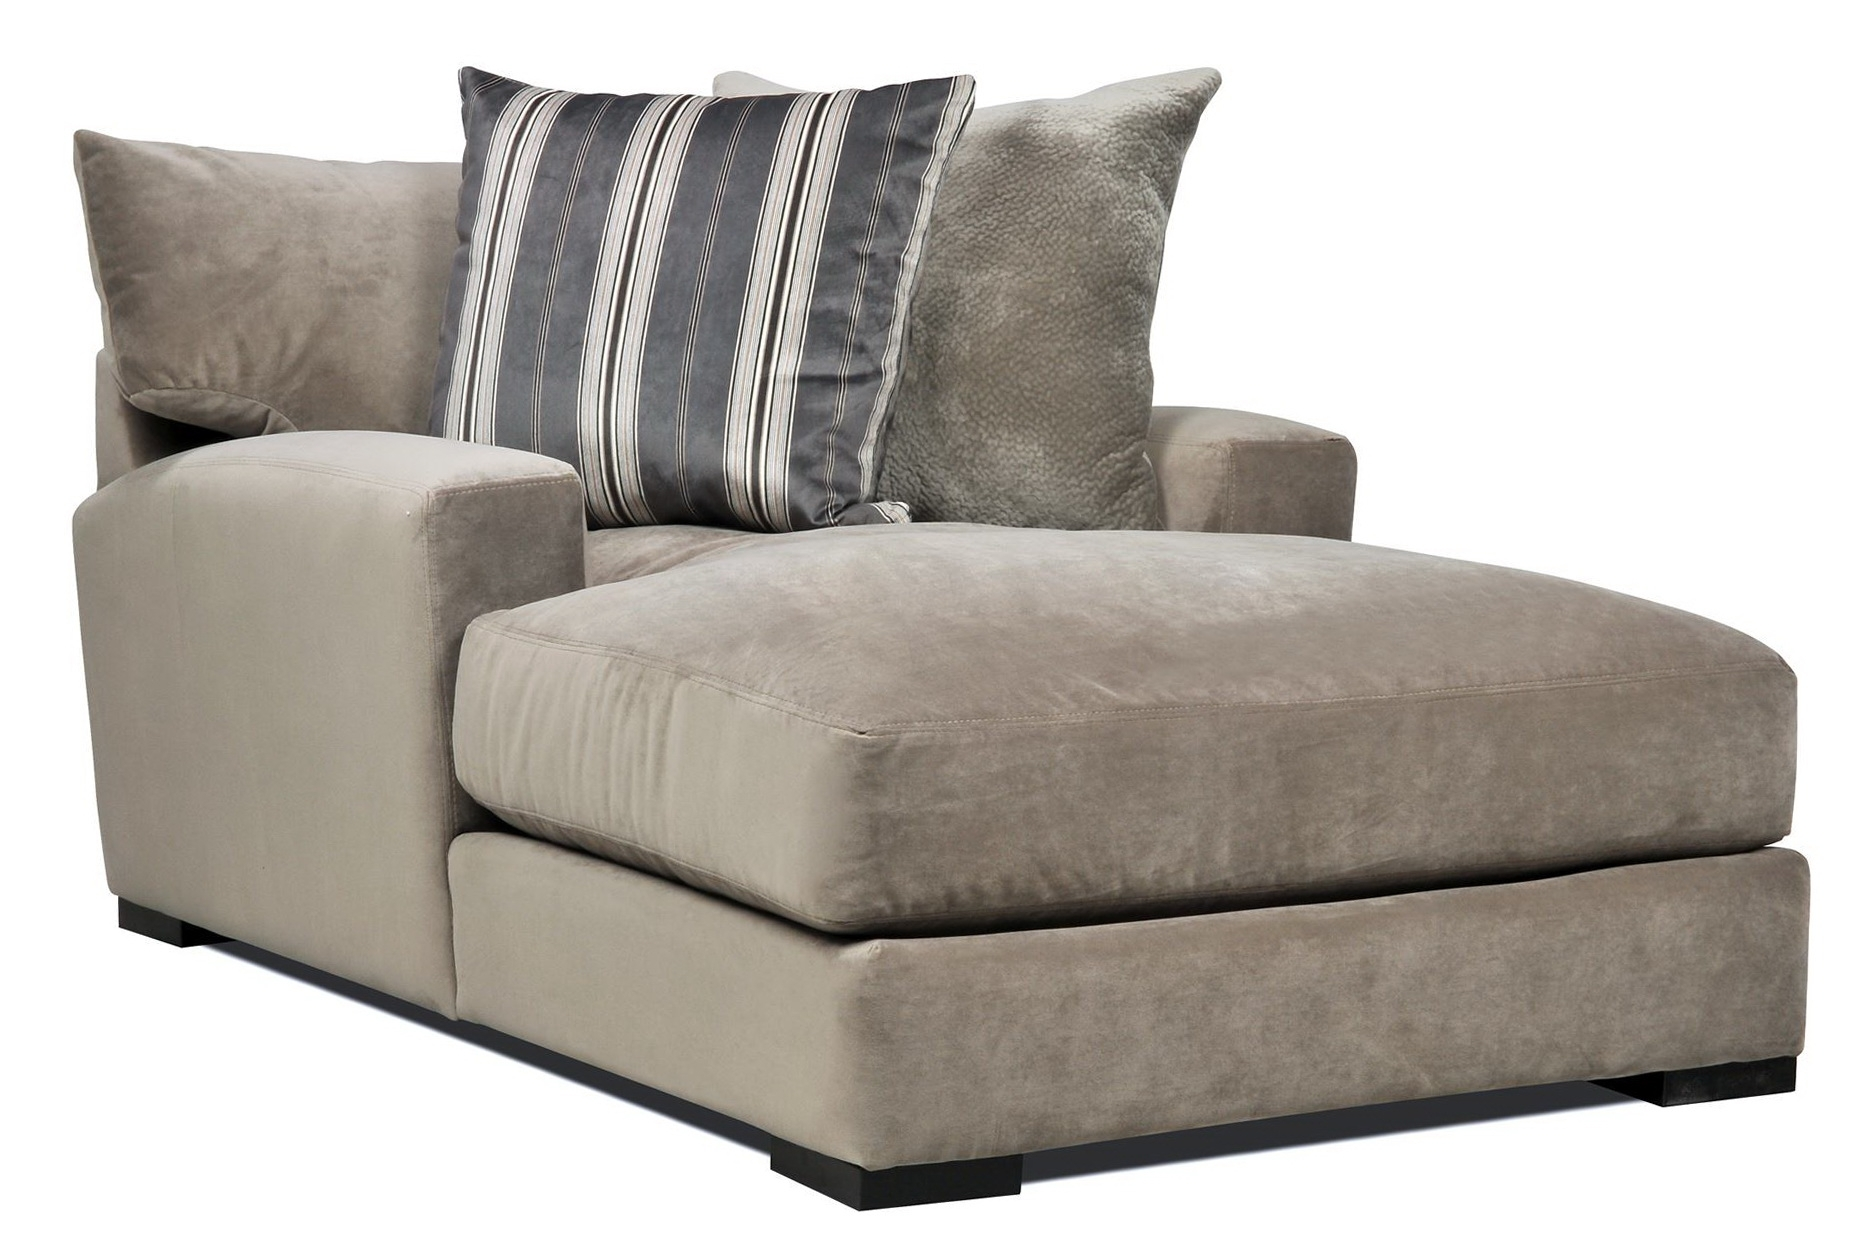 Oversized Chaise Lounges In 2017 Furniture: Double Wide Chaise Lounge Indoor With 2 Cushions (View 7 of 15)